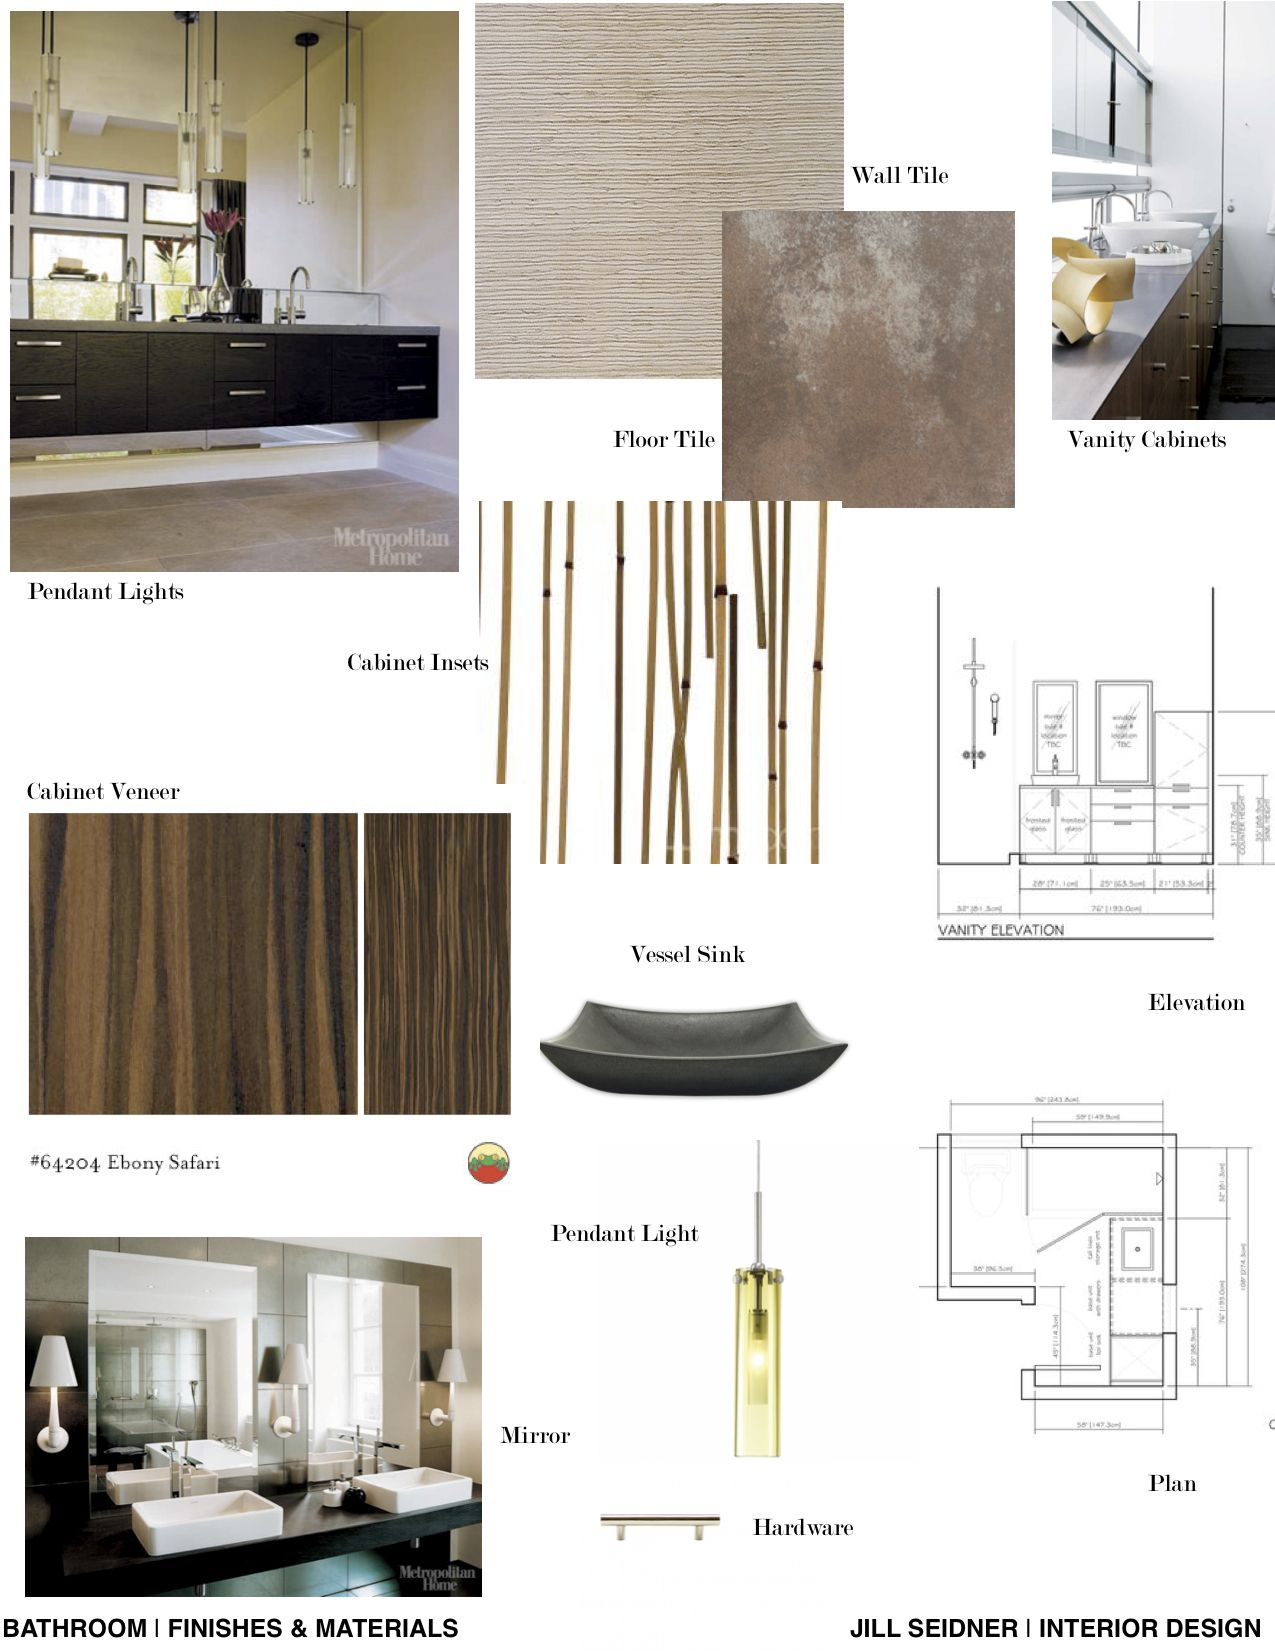 Concept Board For A Spa Bathroom With Images Interior Design